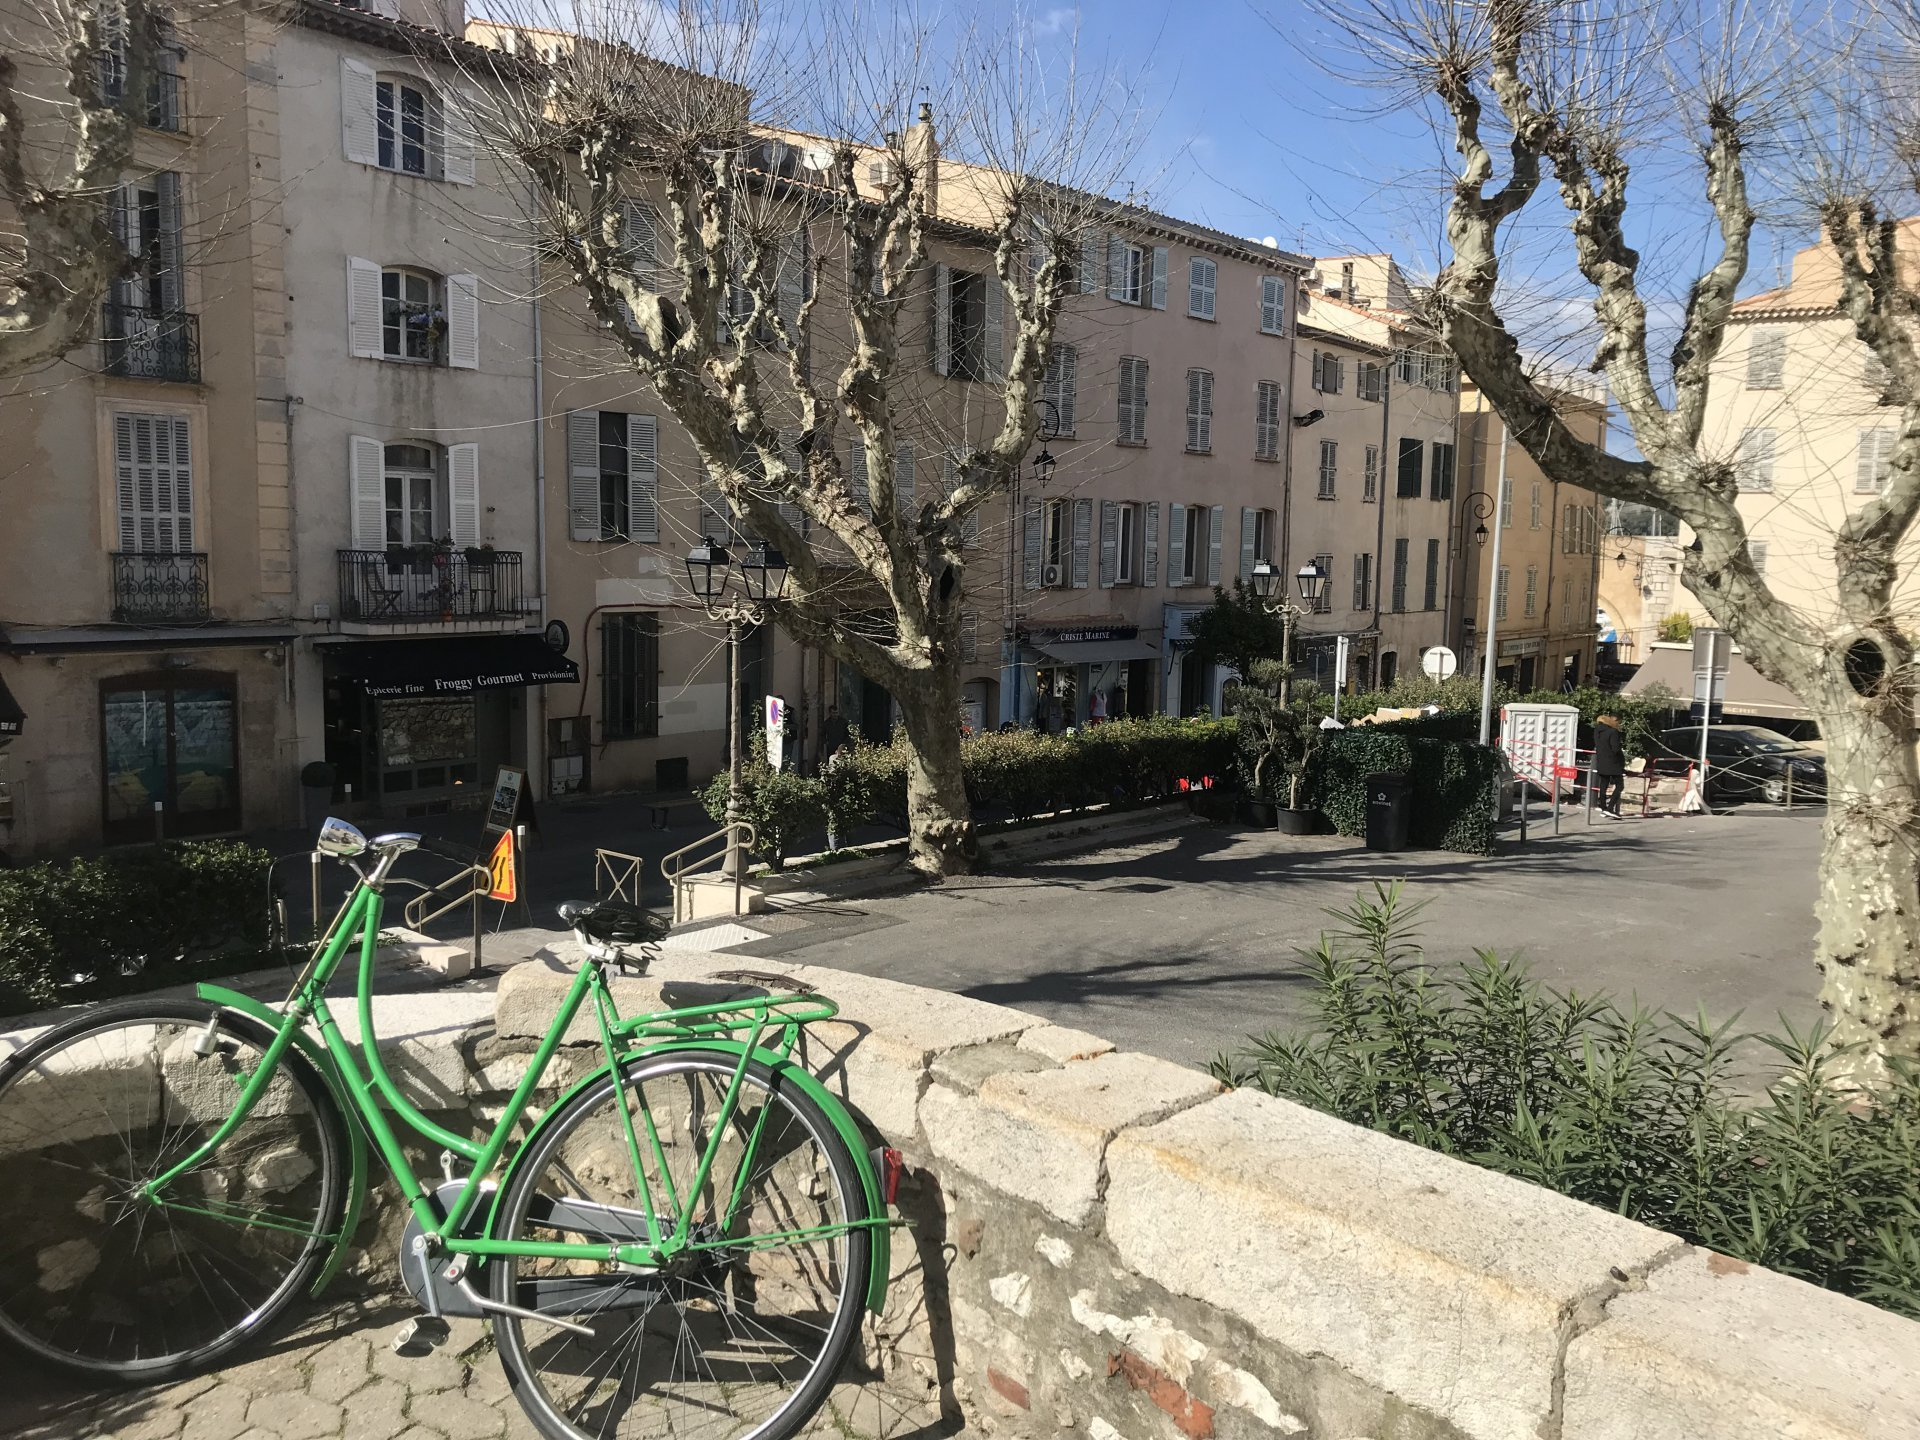 Old Town Antibes - Complete charm and authenticity